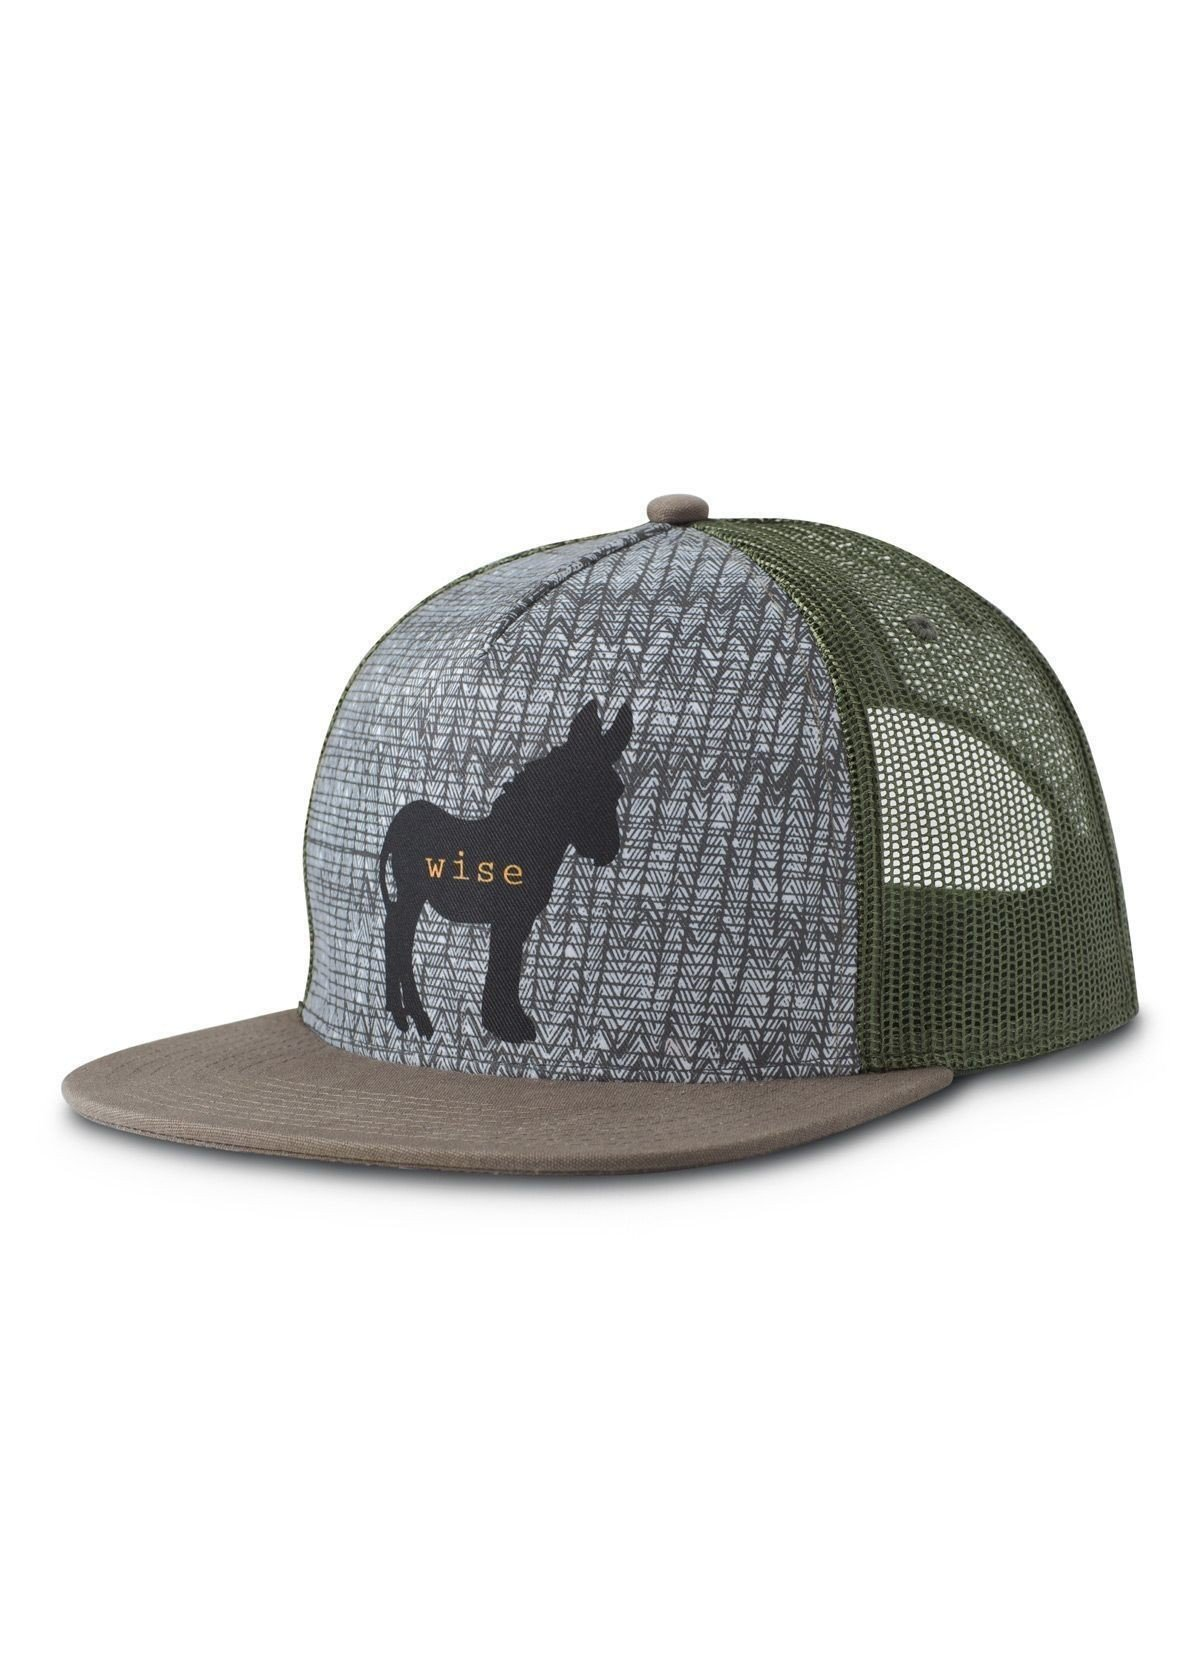 prAna Journeyman Trucker Wise Donkey Hat PRJTCLdonkey